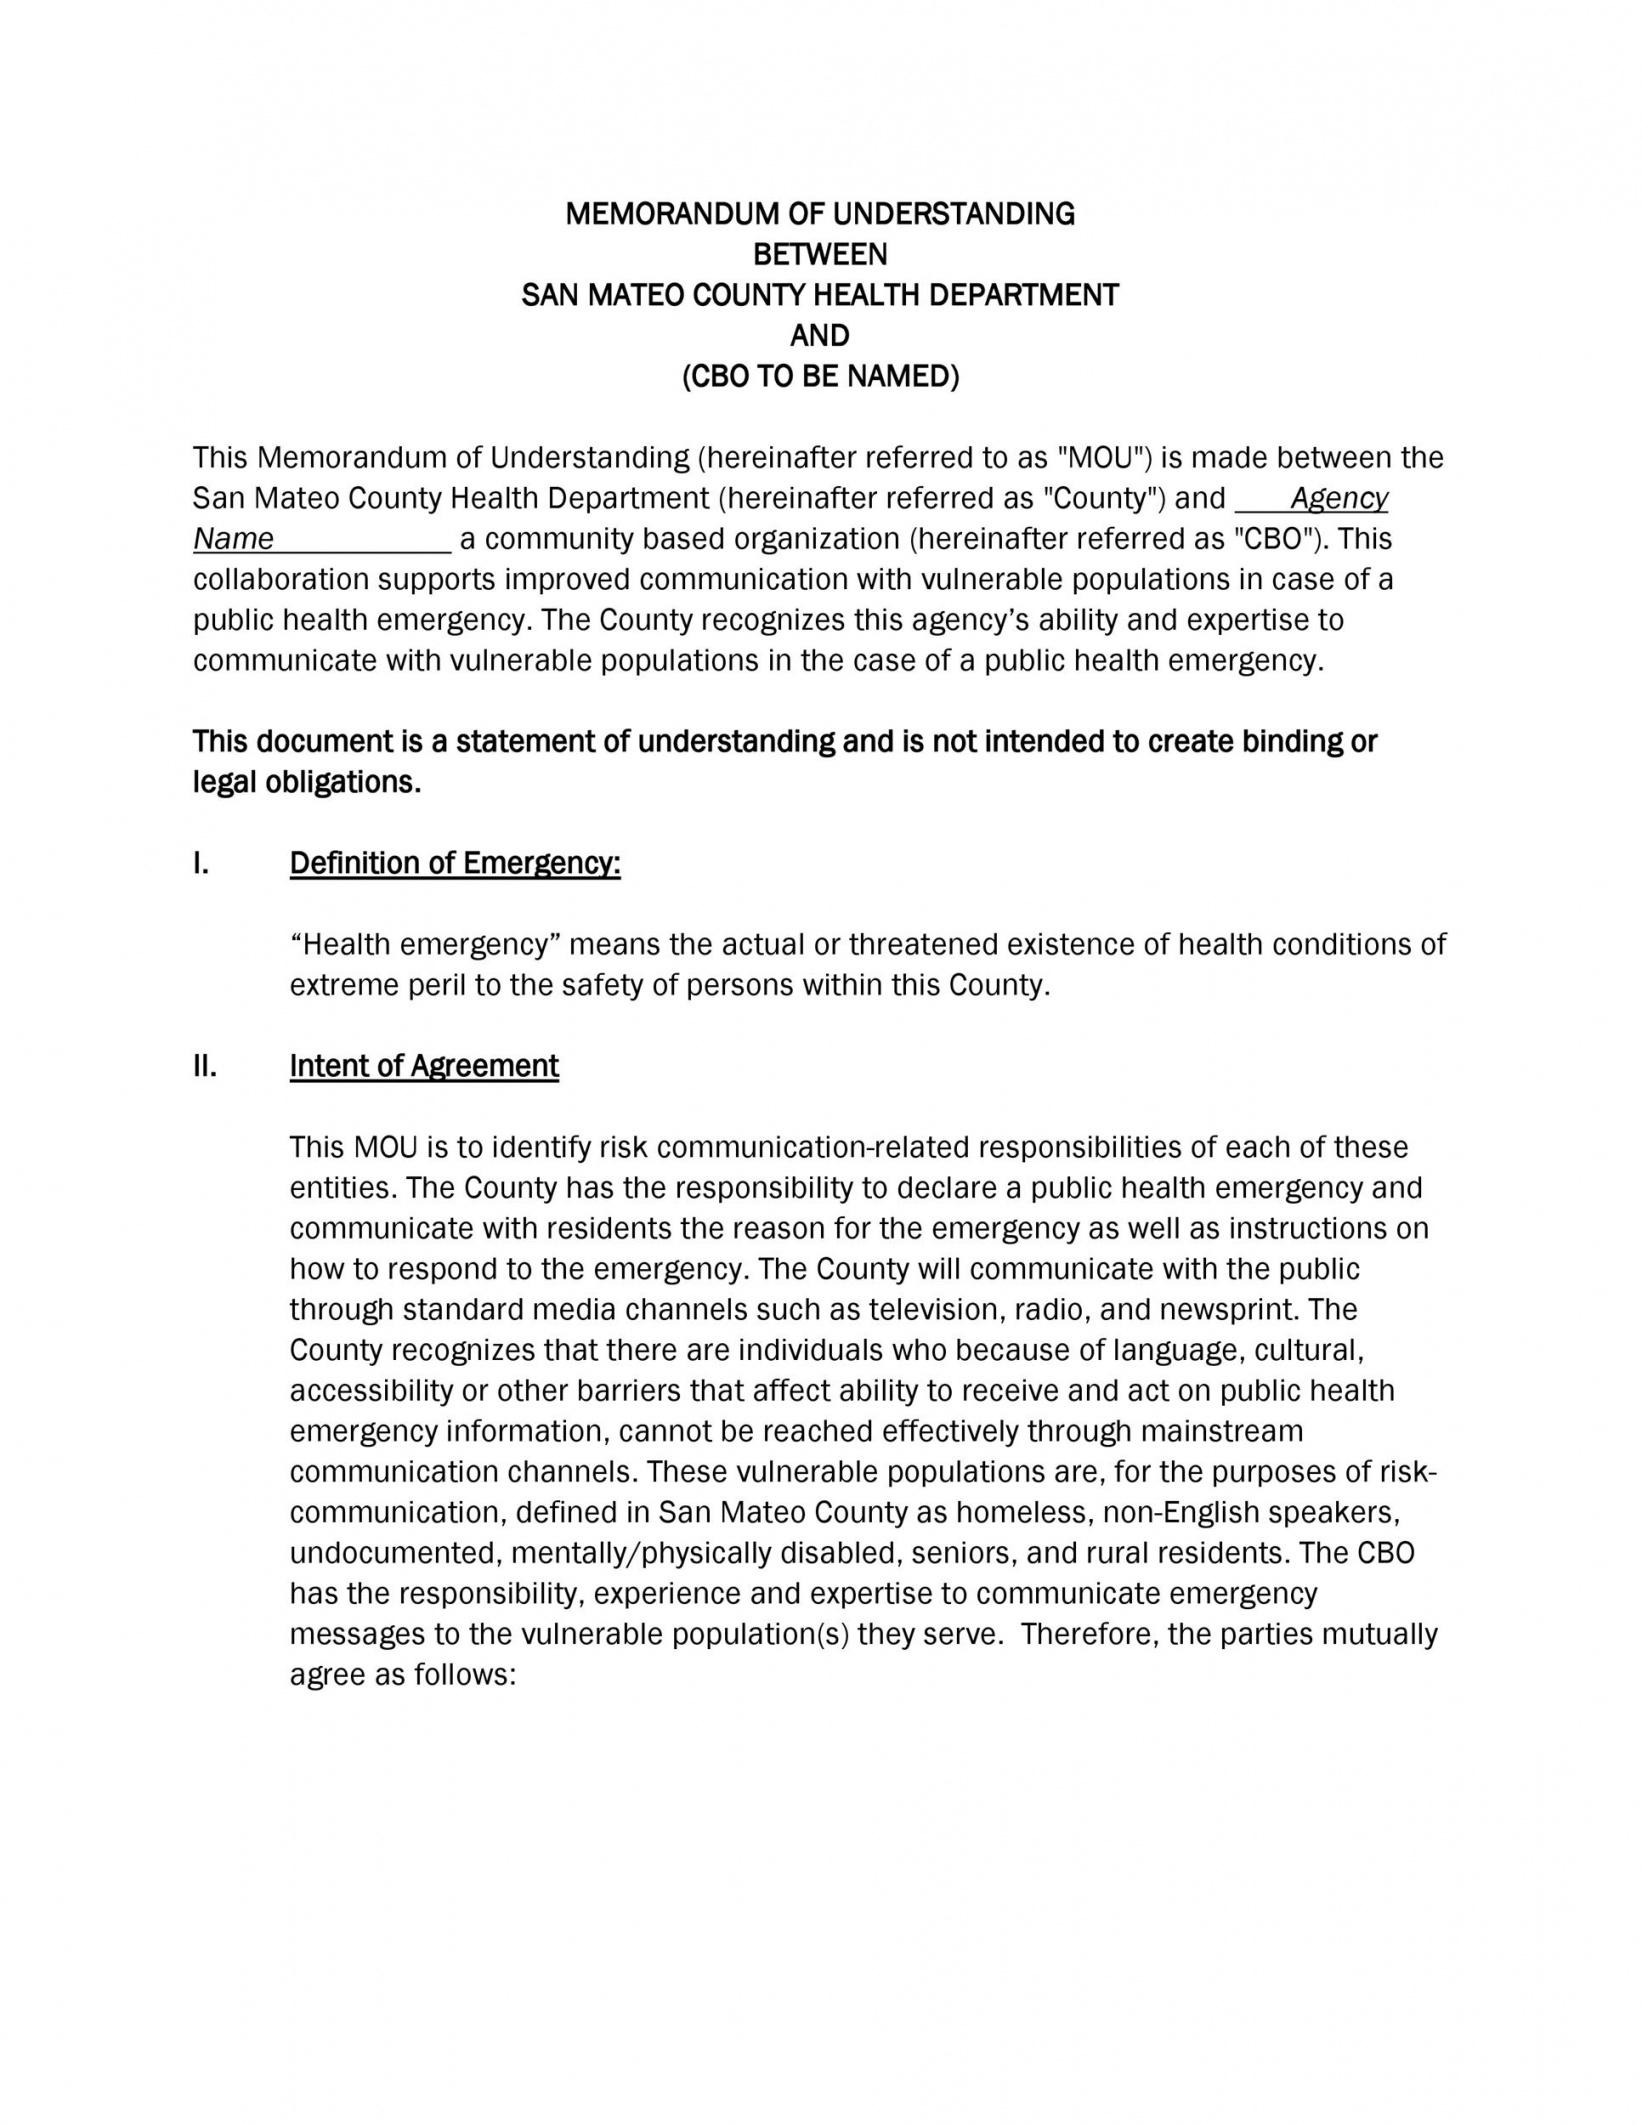 editable 50 free memorandum of understanding templates word statement of understanding template pdf